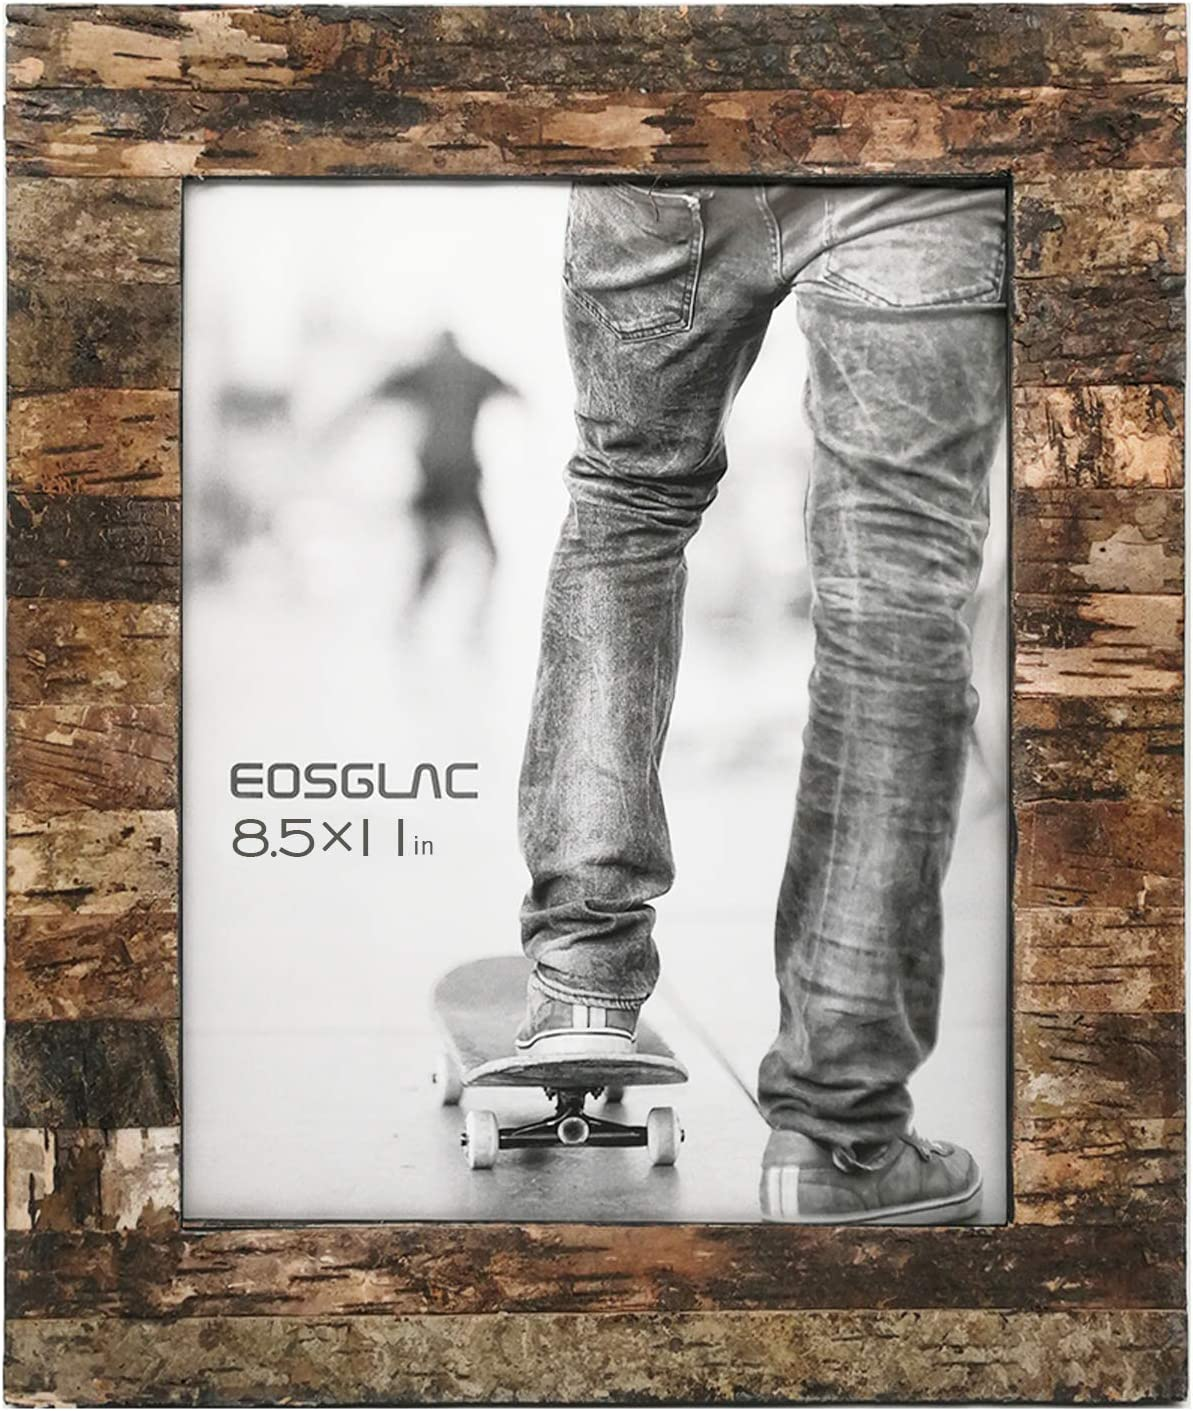 Eosglac Rustic 8.5x11 Wooden Picture Frame, Handmade with Real Birch Bark, Photo Frame Natural